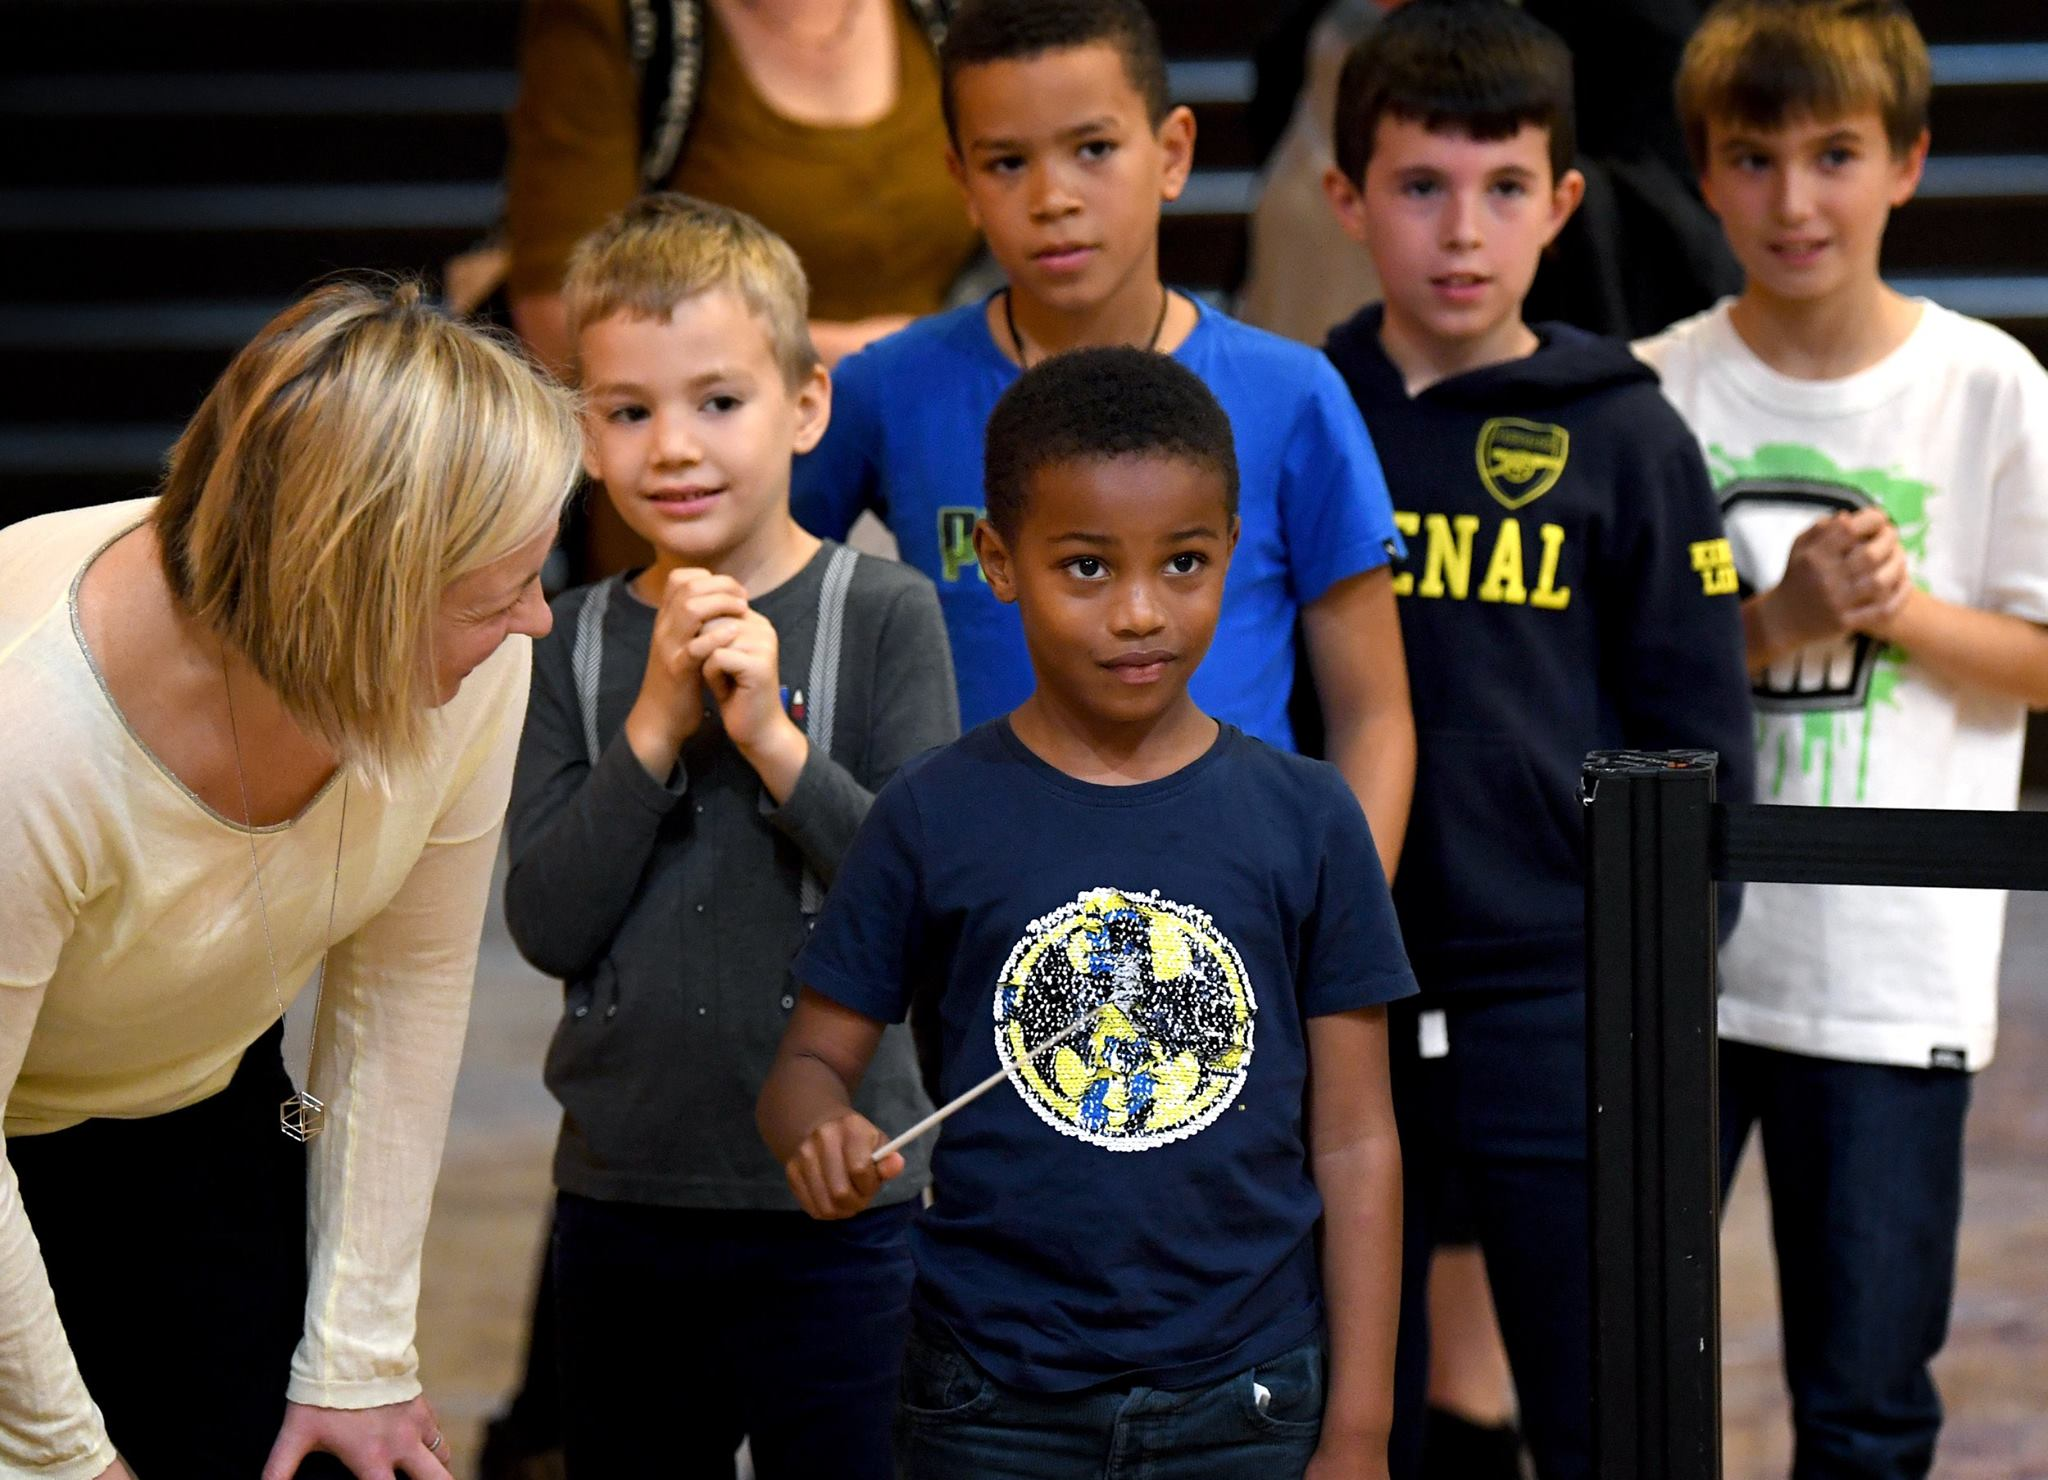 A small British boy of African descent wearing a blue teeshirt with a yellow superhero logo on the front holds a conducting baton and looks towards the photographer. Behind him are four more boys, slightly older than him, waiting for their turn. On the left of the photo is a blonde, white woman, bending own and smiling at him in encouragement.